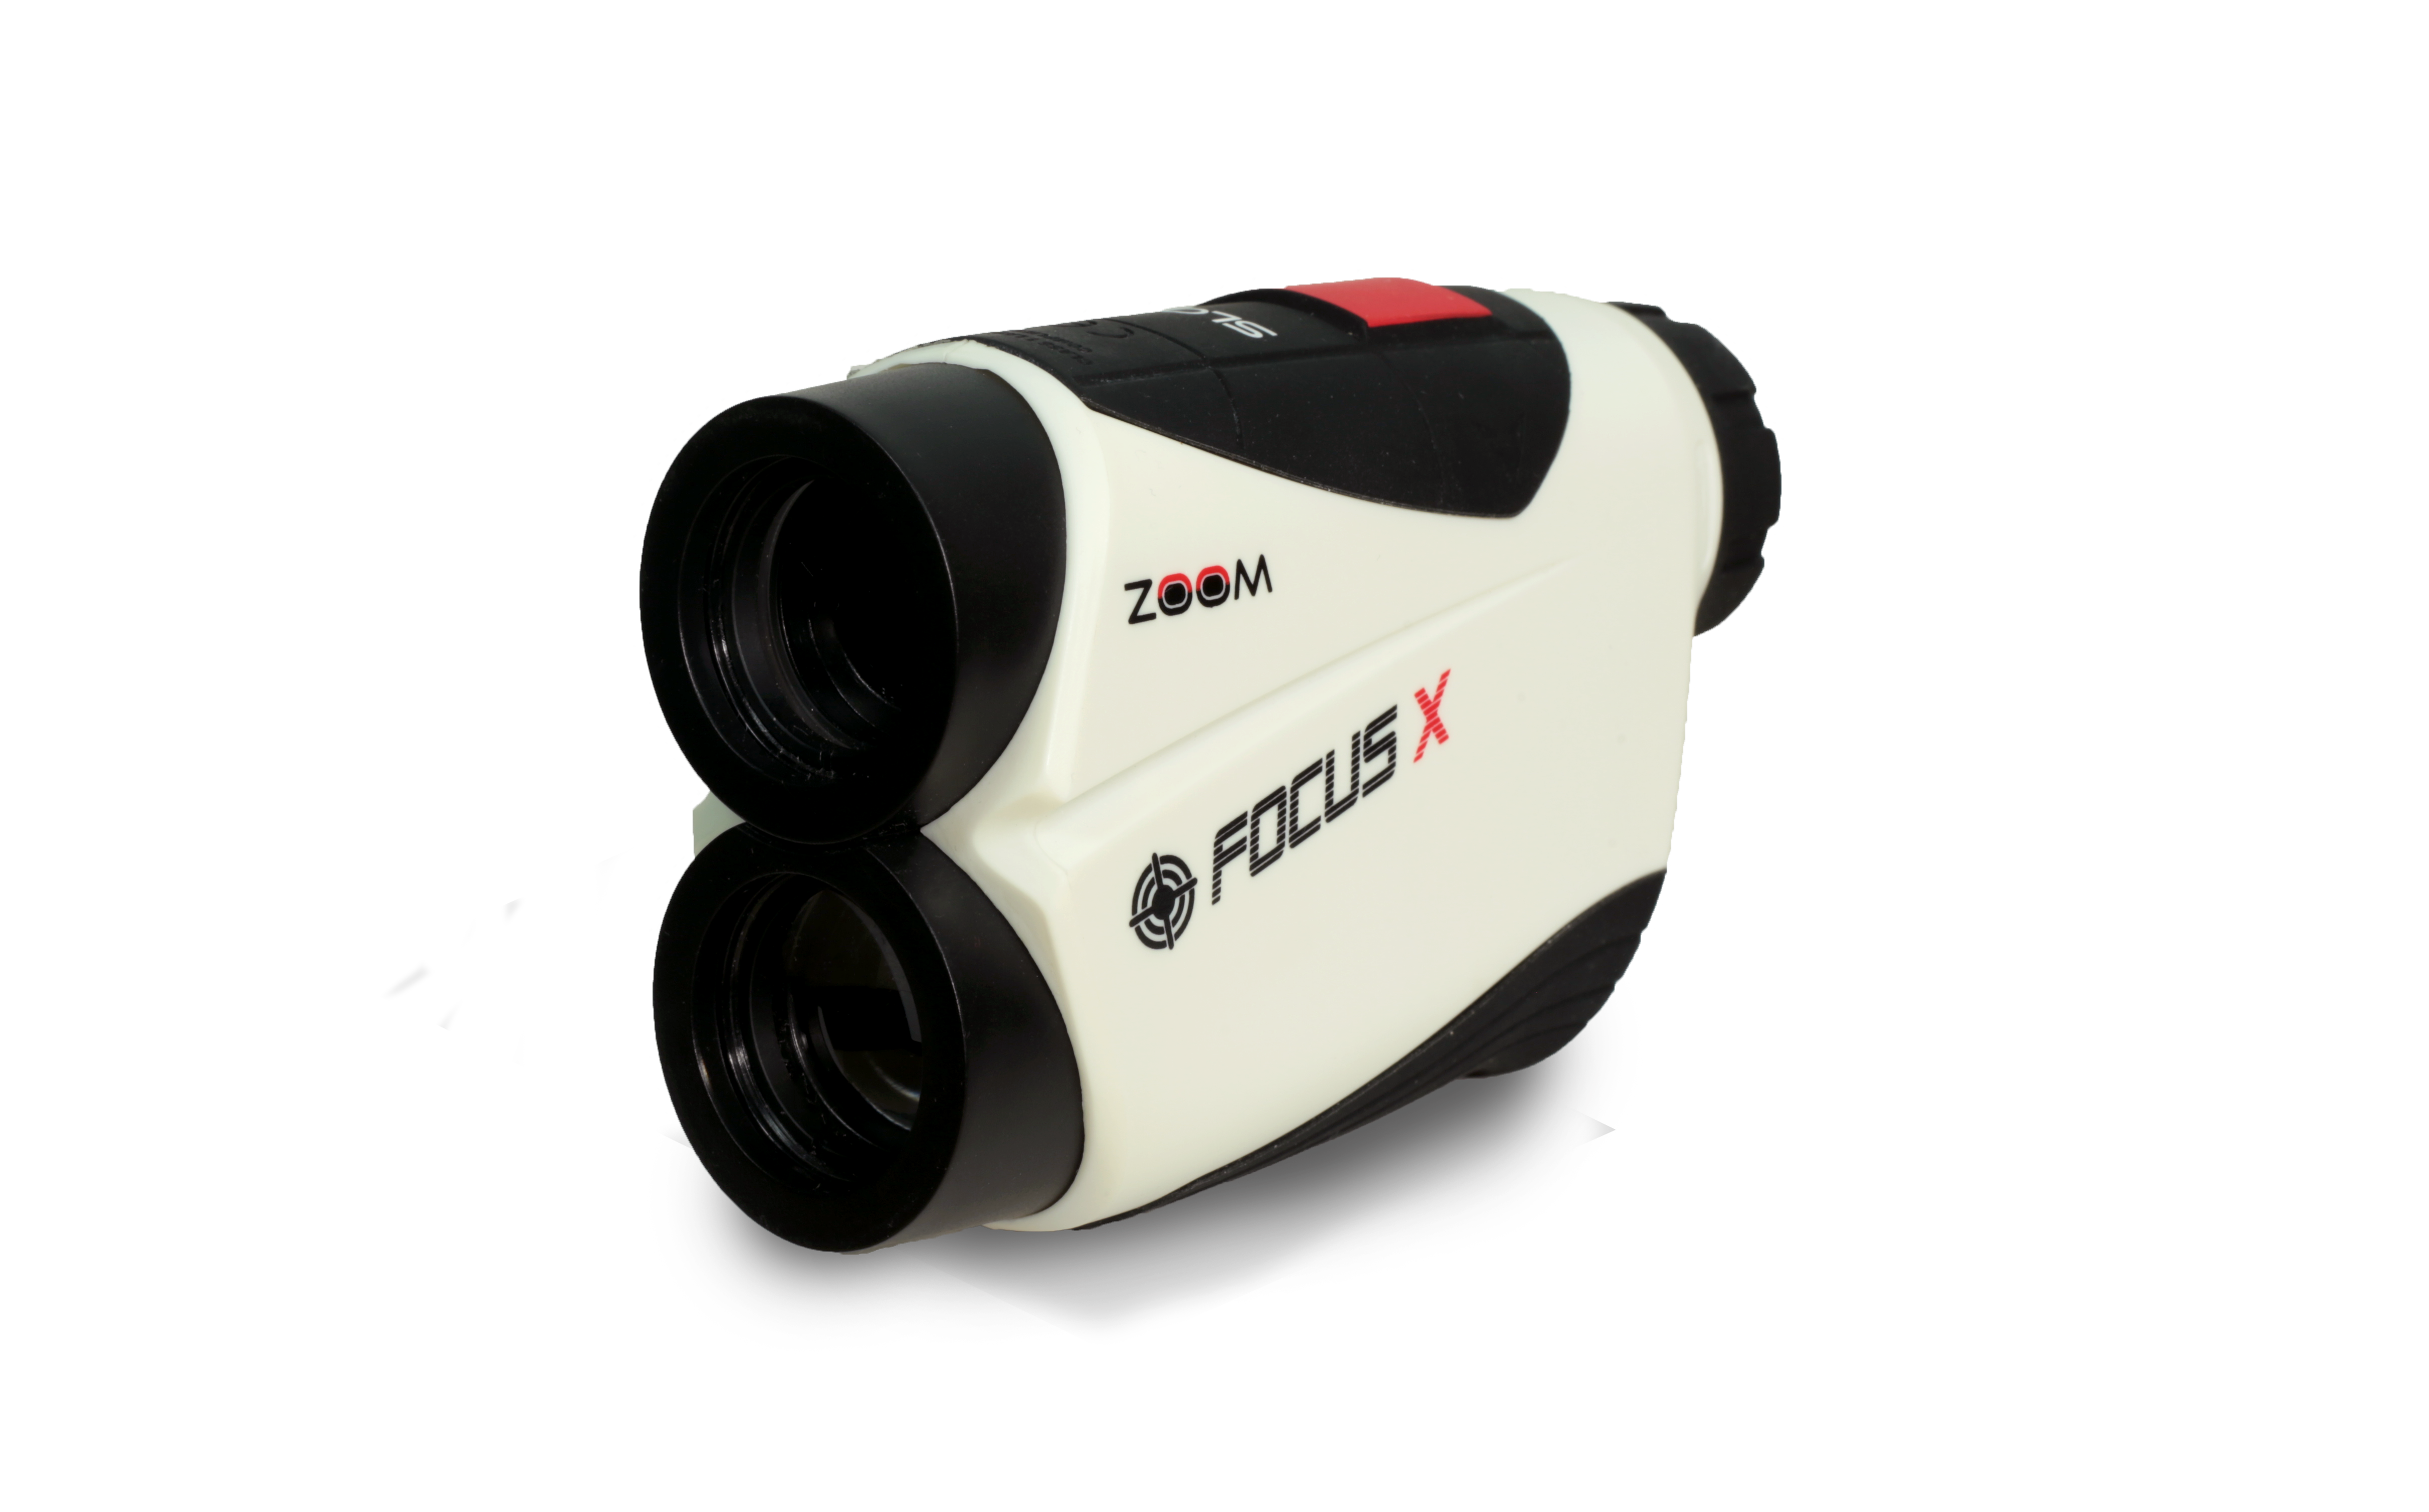 Focus on your golf game with ZOOM